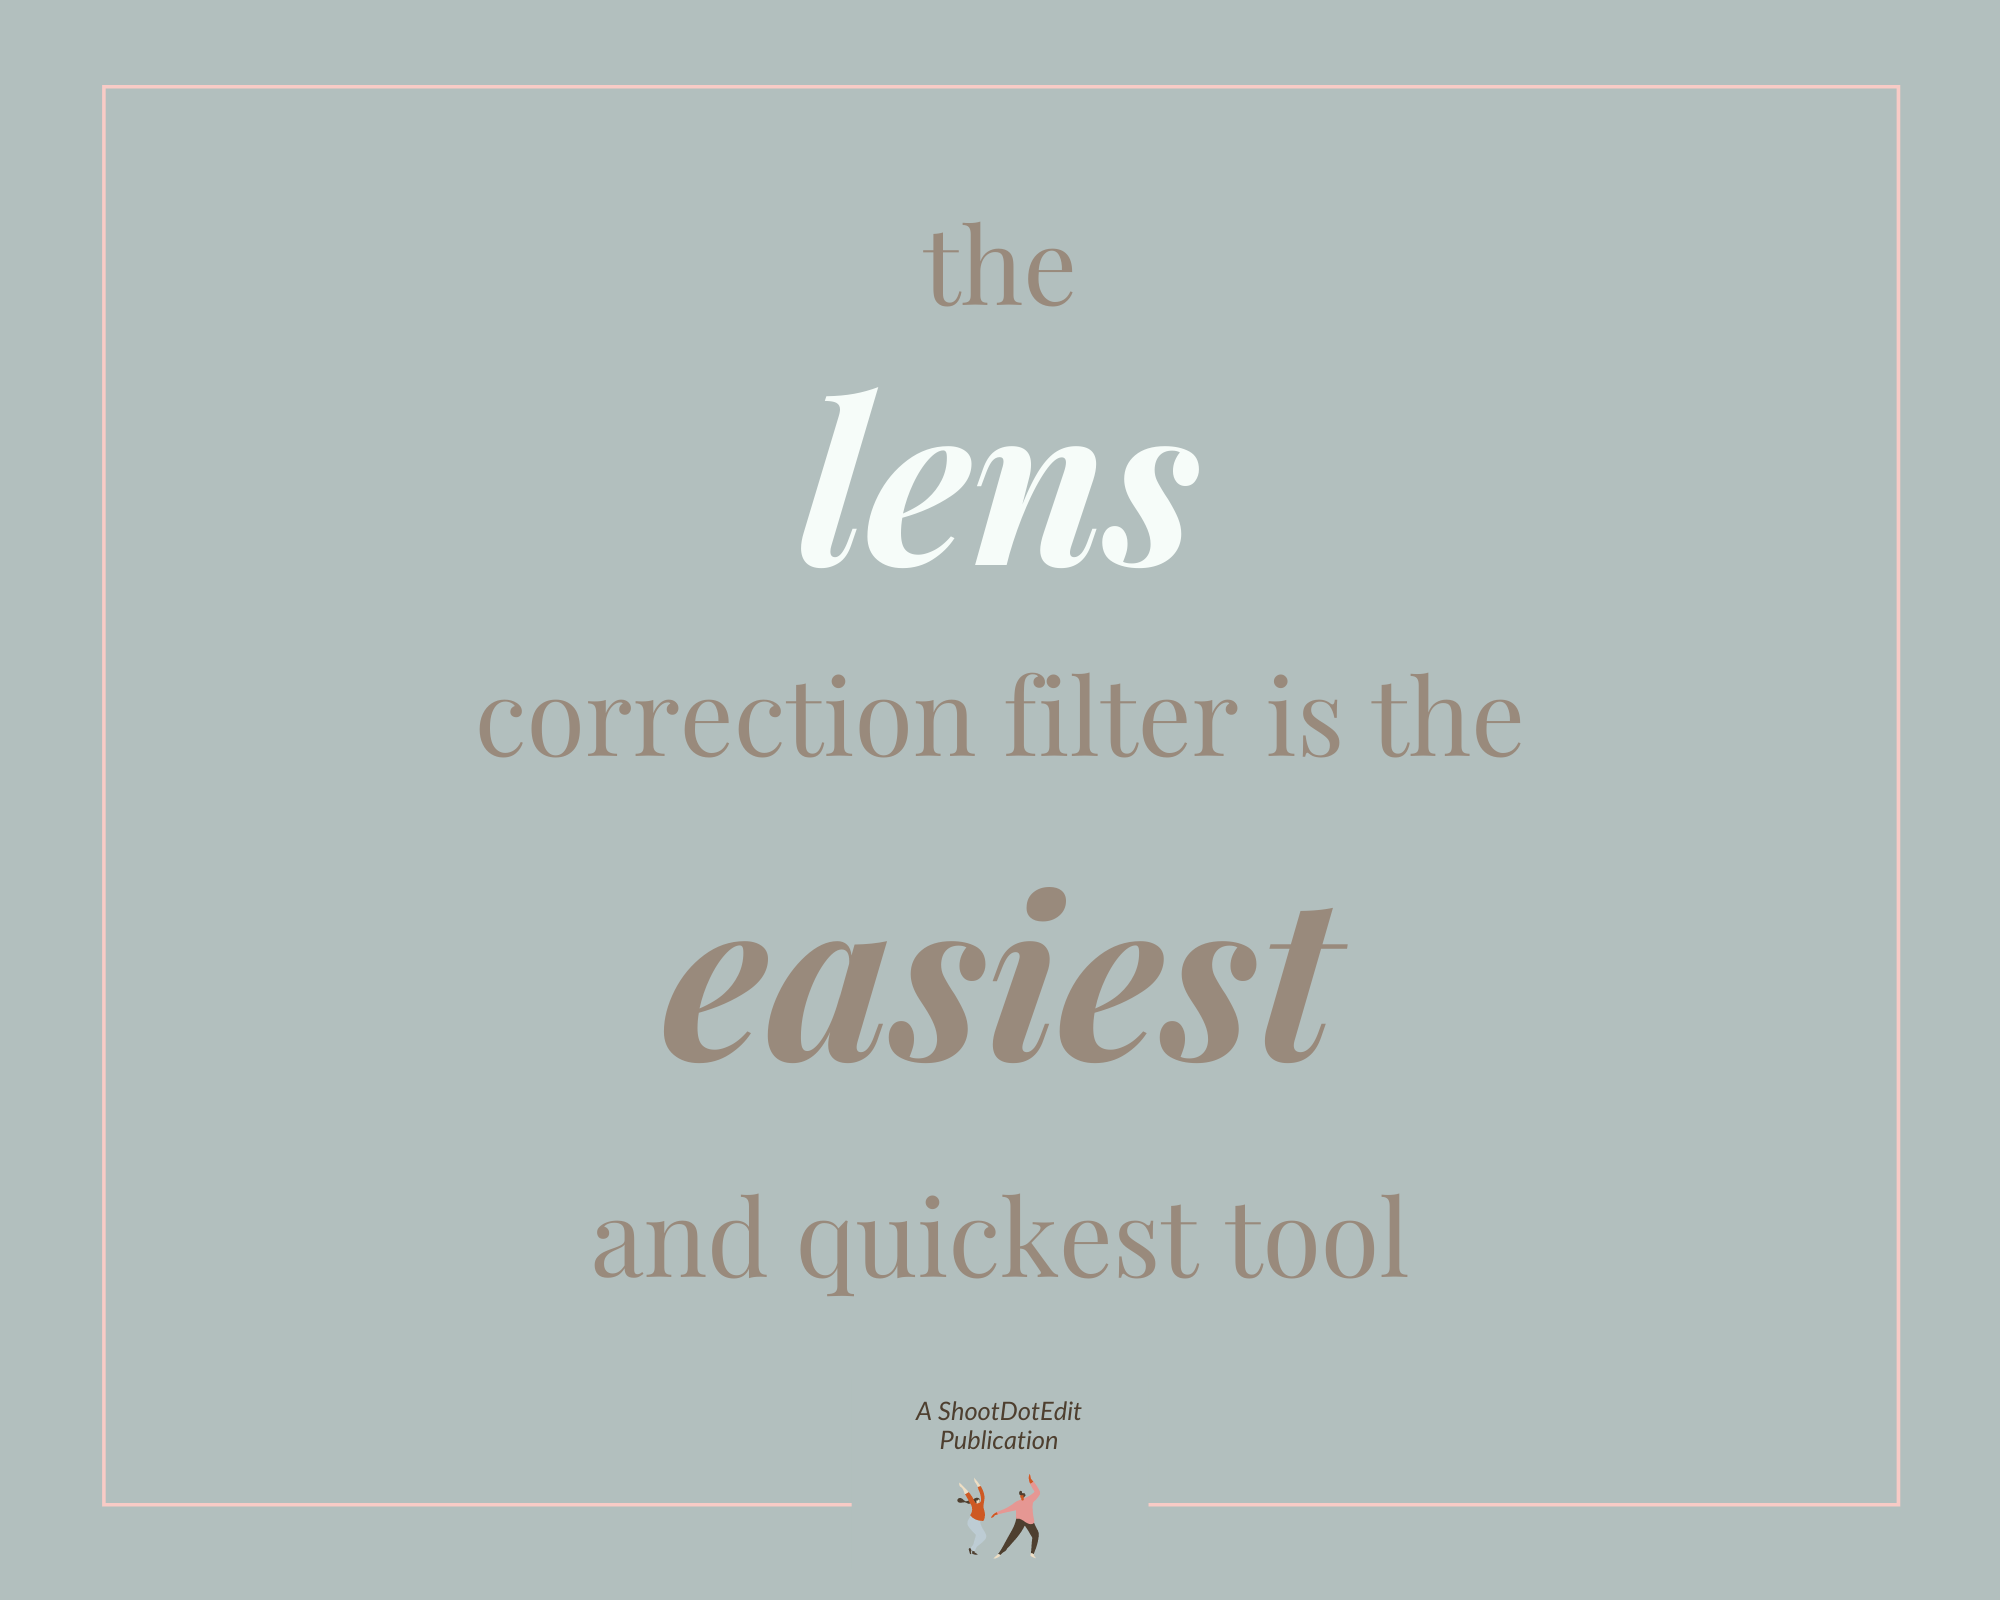 Infographic stating the lens correction filter is the easiest and quickest tool